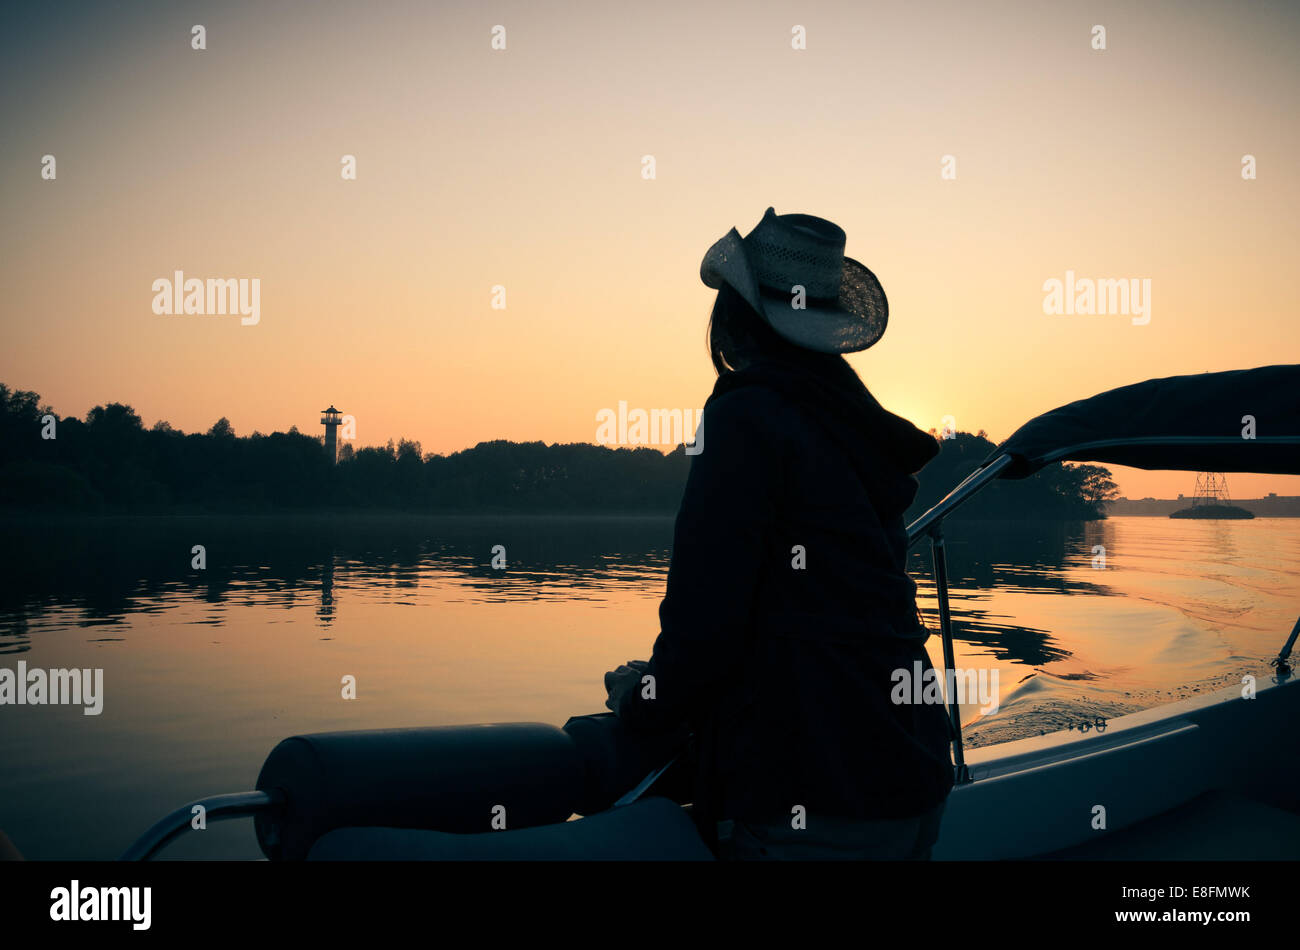 Silhouette of woman on boat looking at view - Stock Image